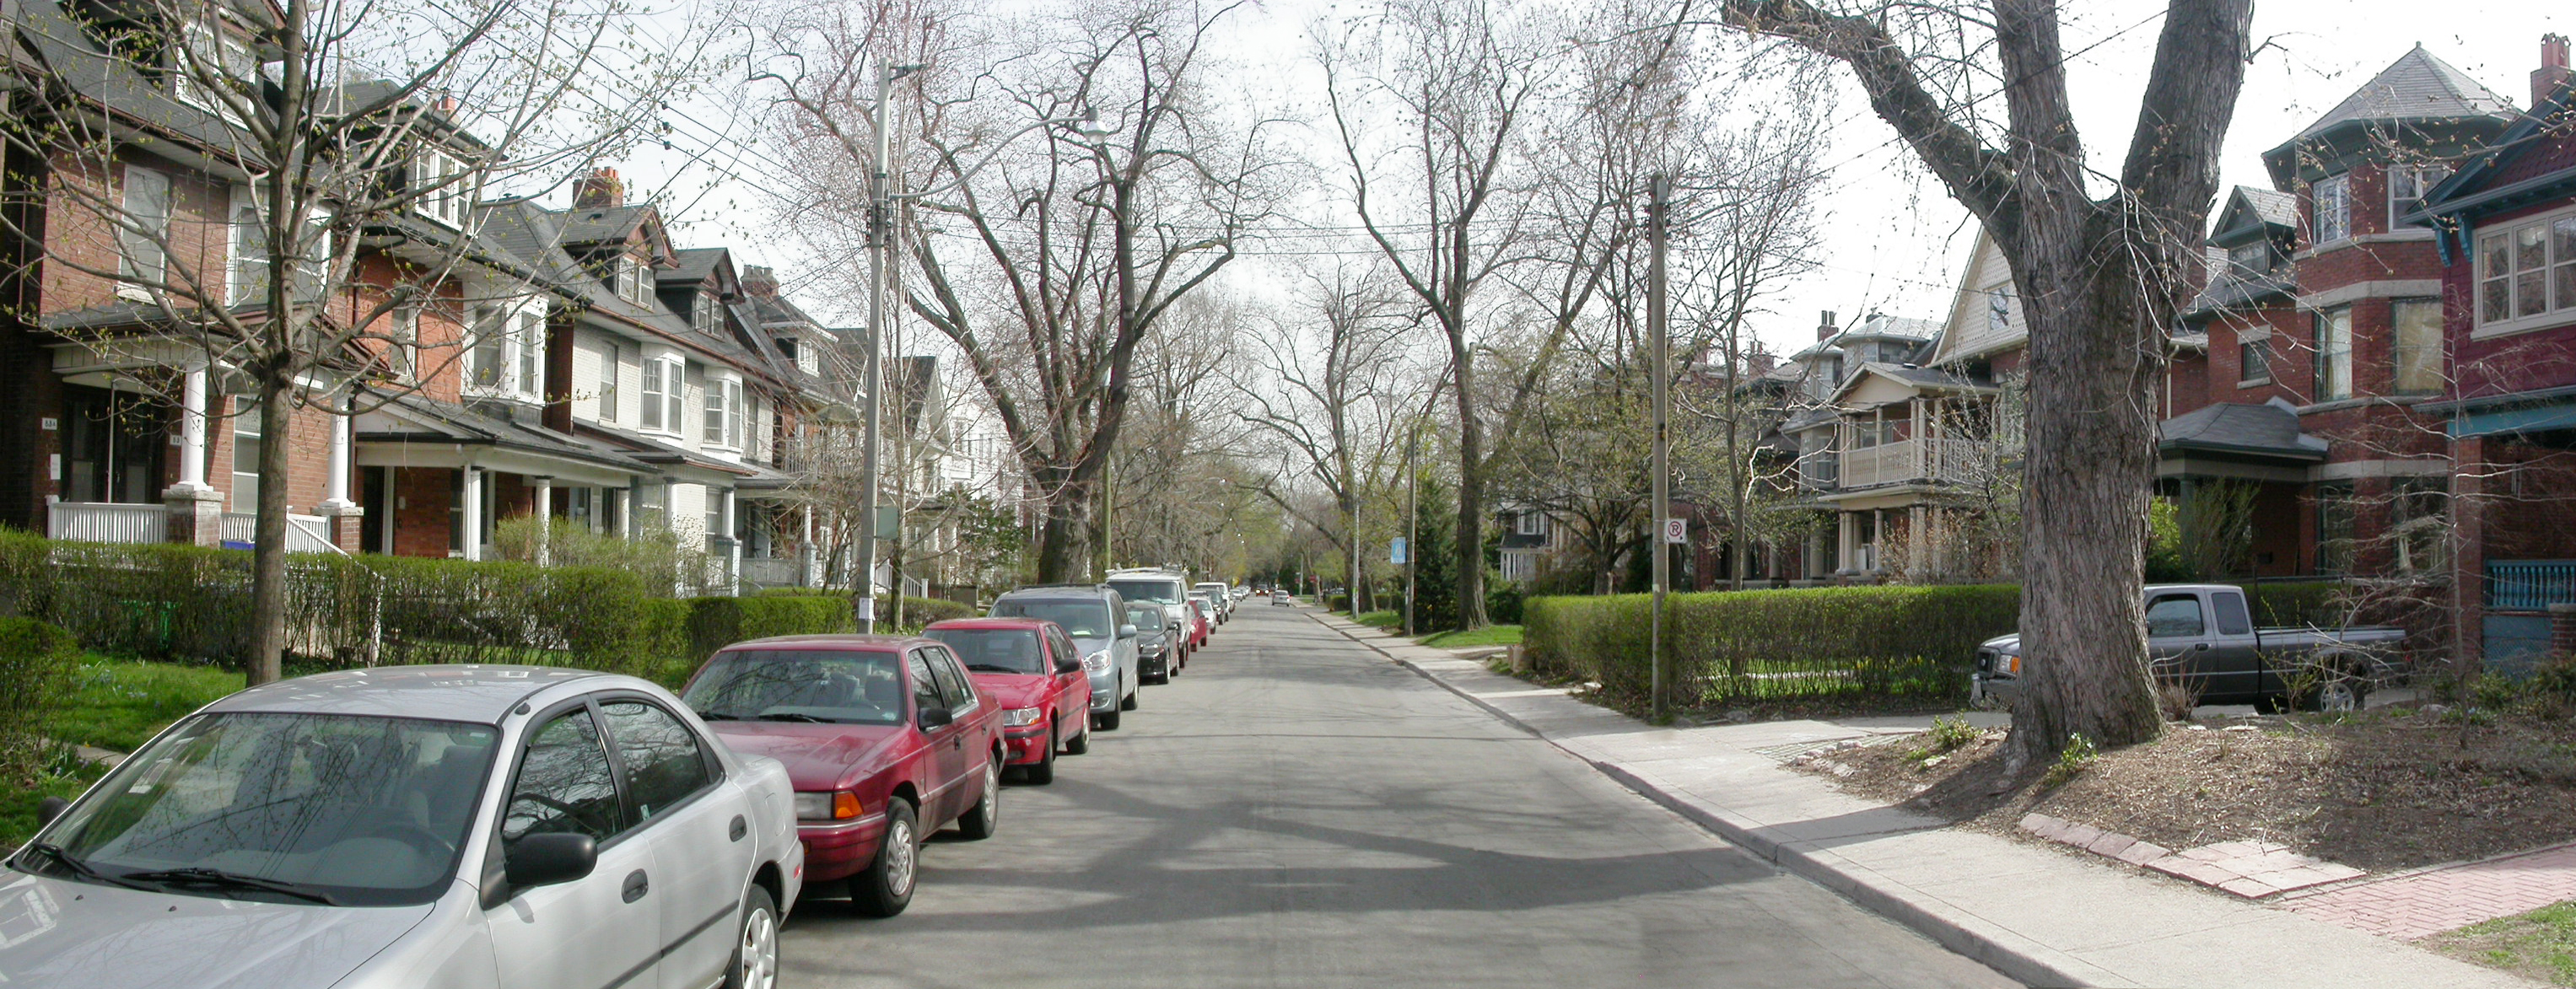 Applying for a Parking Permit – City of Toronto